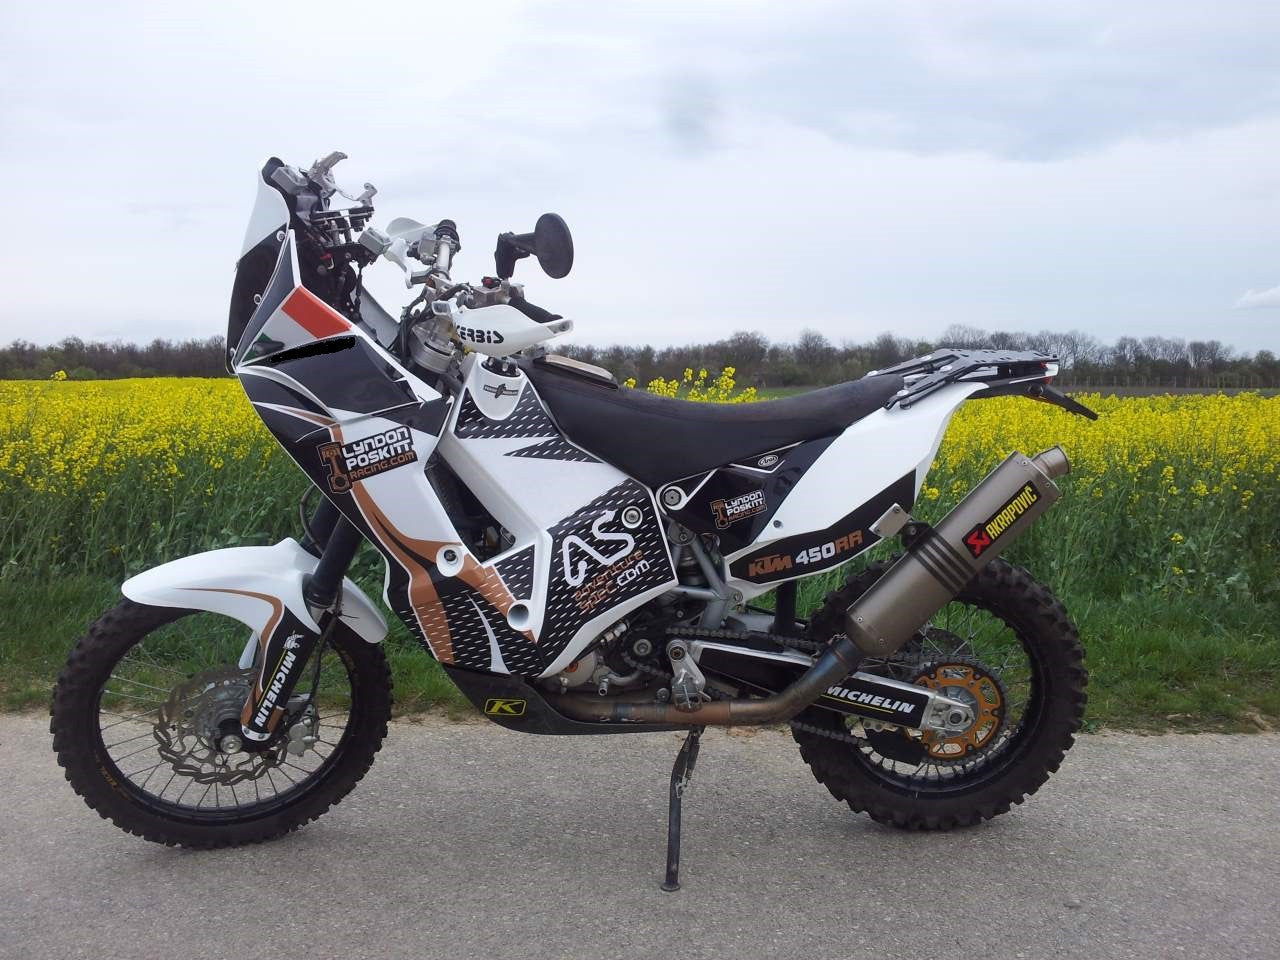 Perun moto Luggage rack SD on KTM 450 Rally Replica